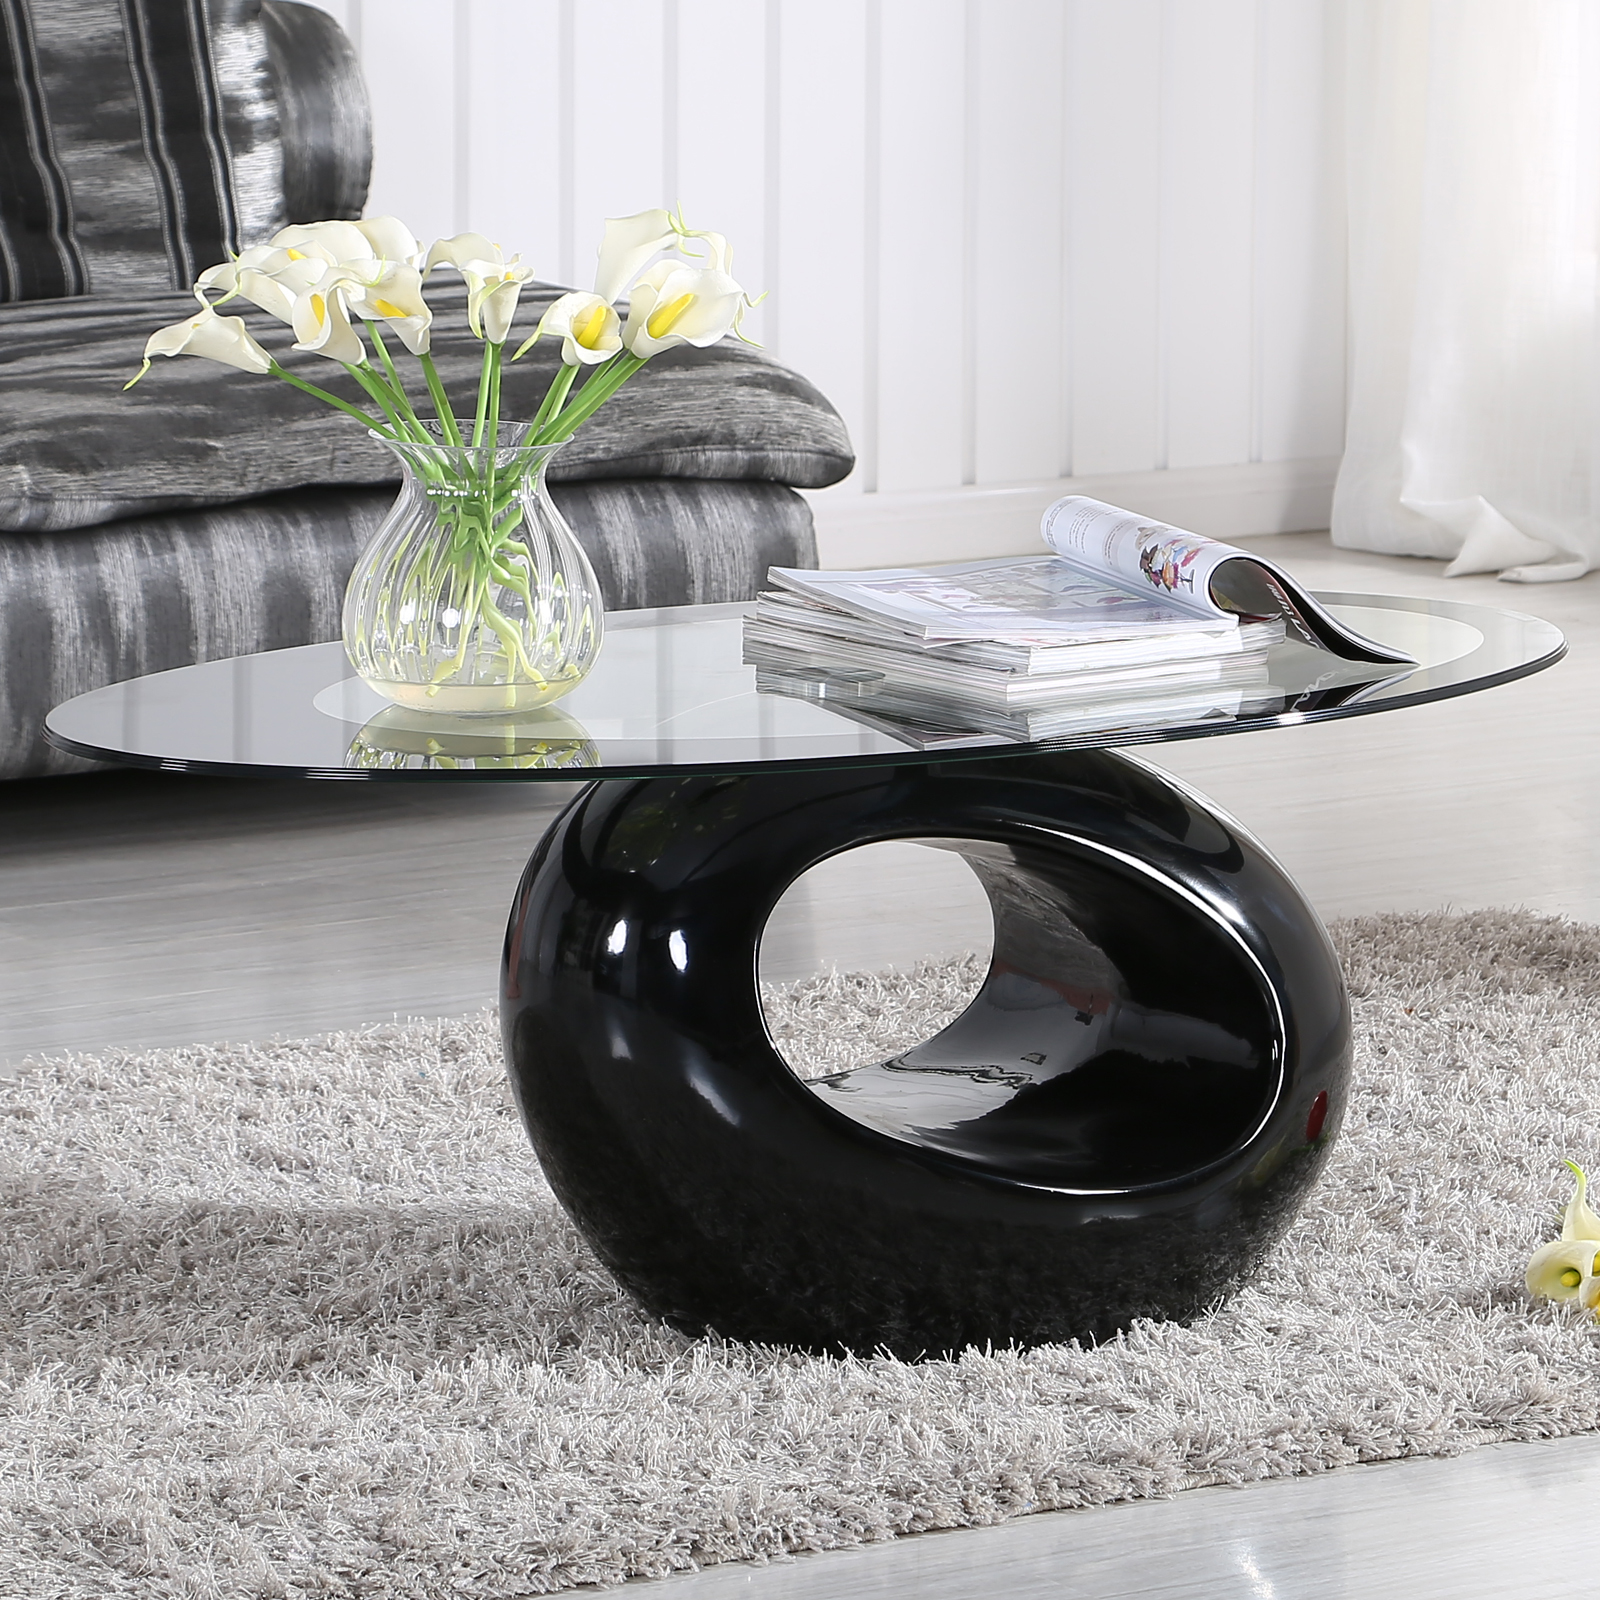 fabulous 1312 tea table living room furniture tempered glass | Modern Glass Oval Coffee Table Contemporary Modern Design ...